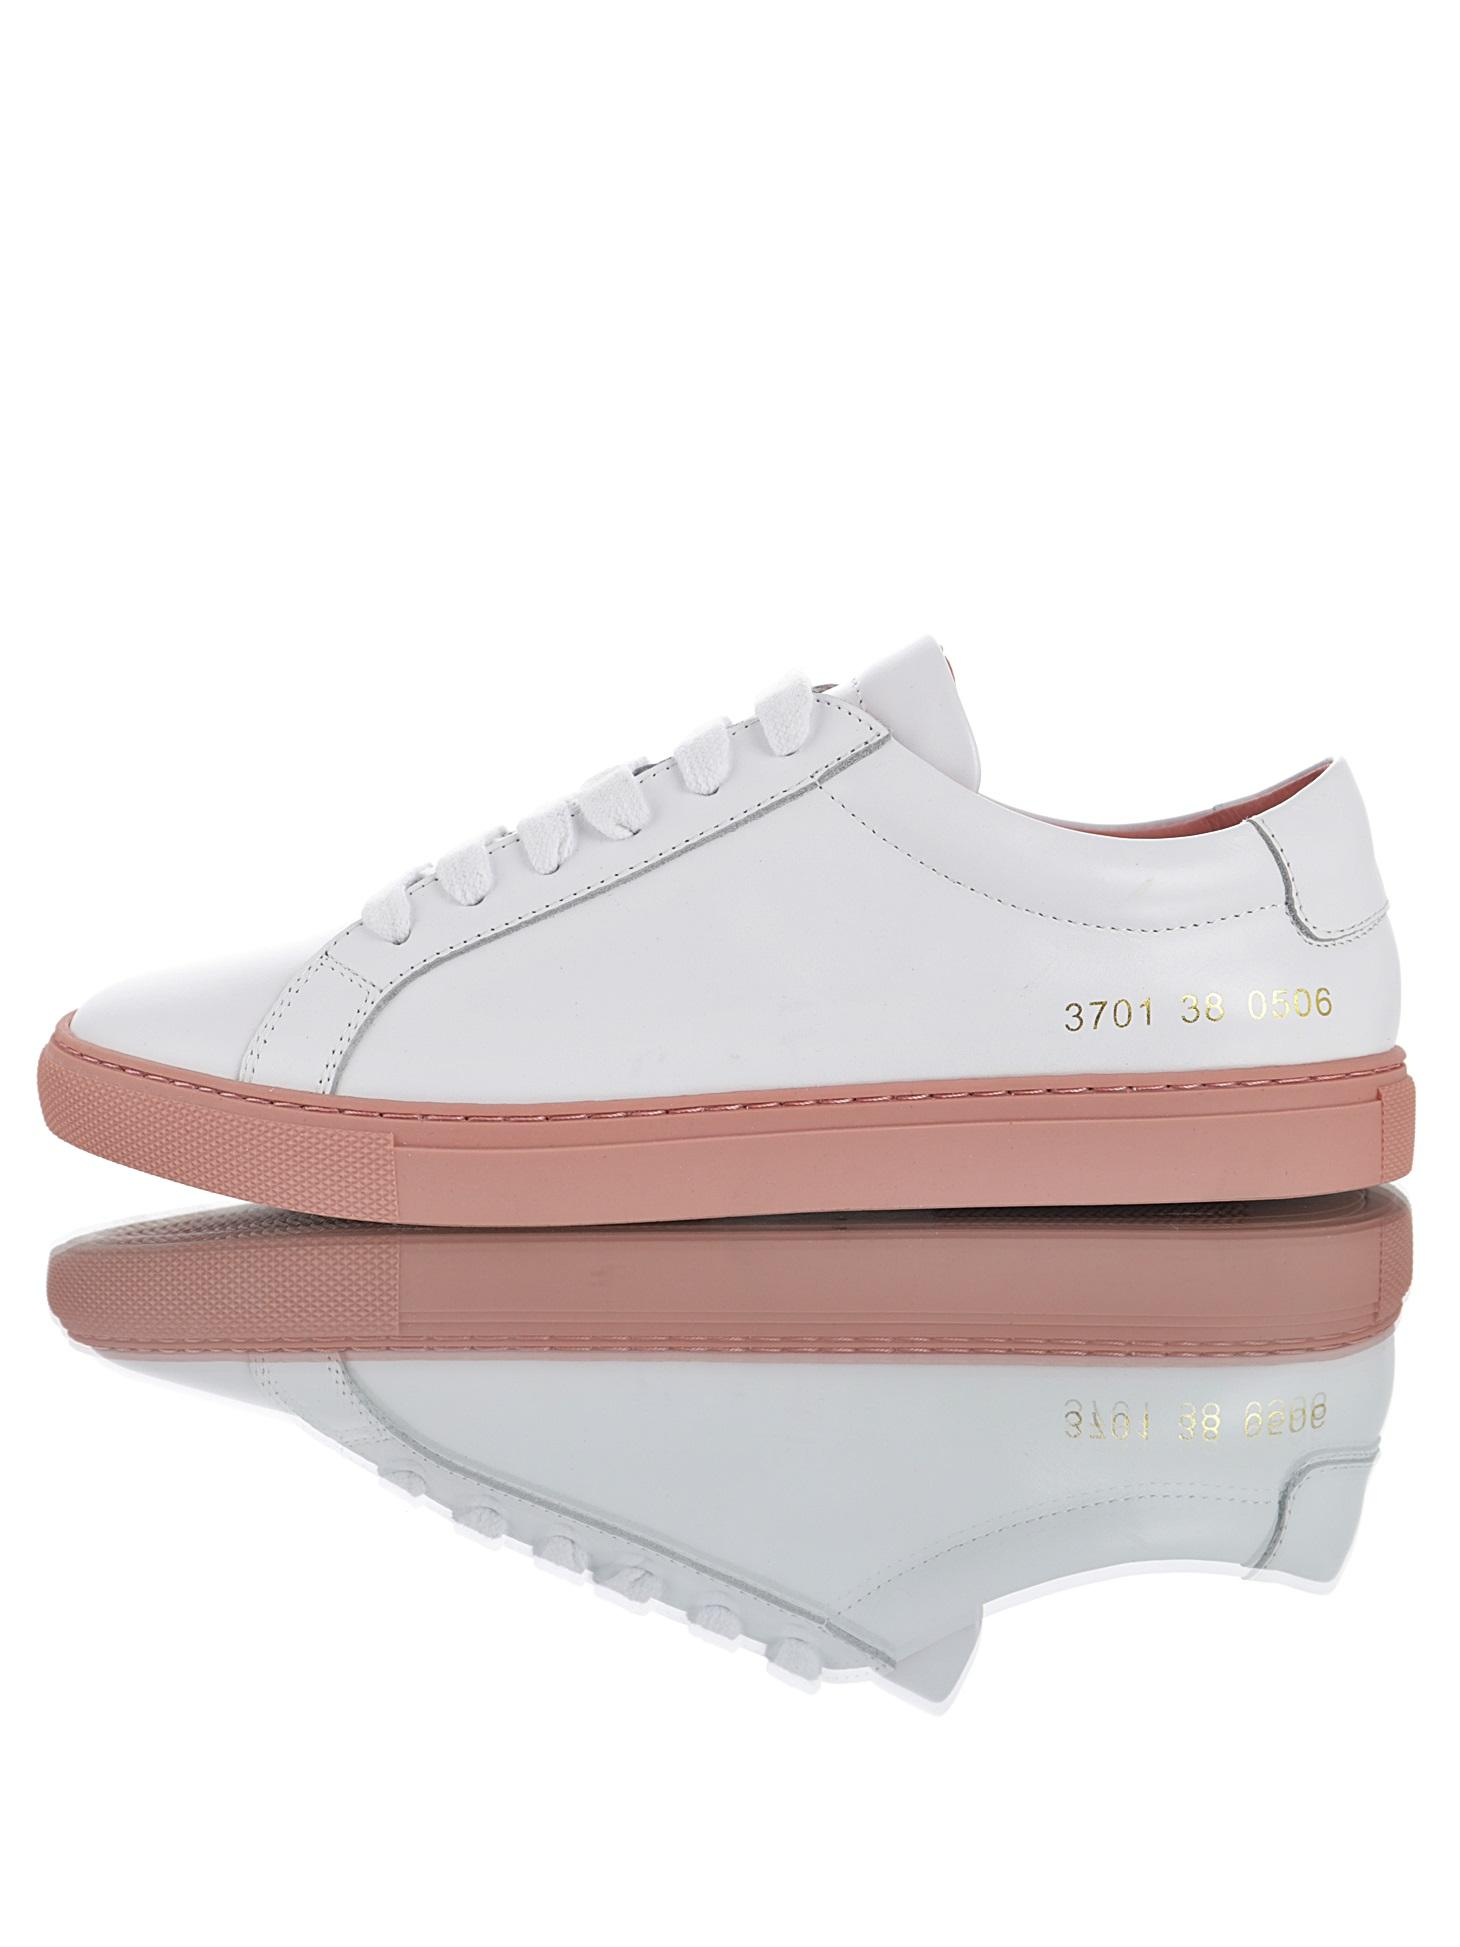 b4270e22cf WOMAN By Common Projects Achilles Low Triple White Black Brown Owl Print  Casual Shoes Men Women Genuine Leather Chaussure With Box 35 44 Formal  Shoes For ...